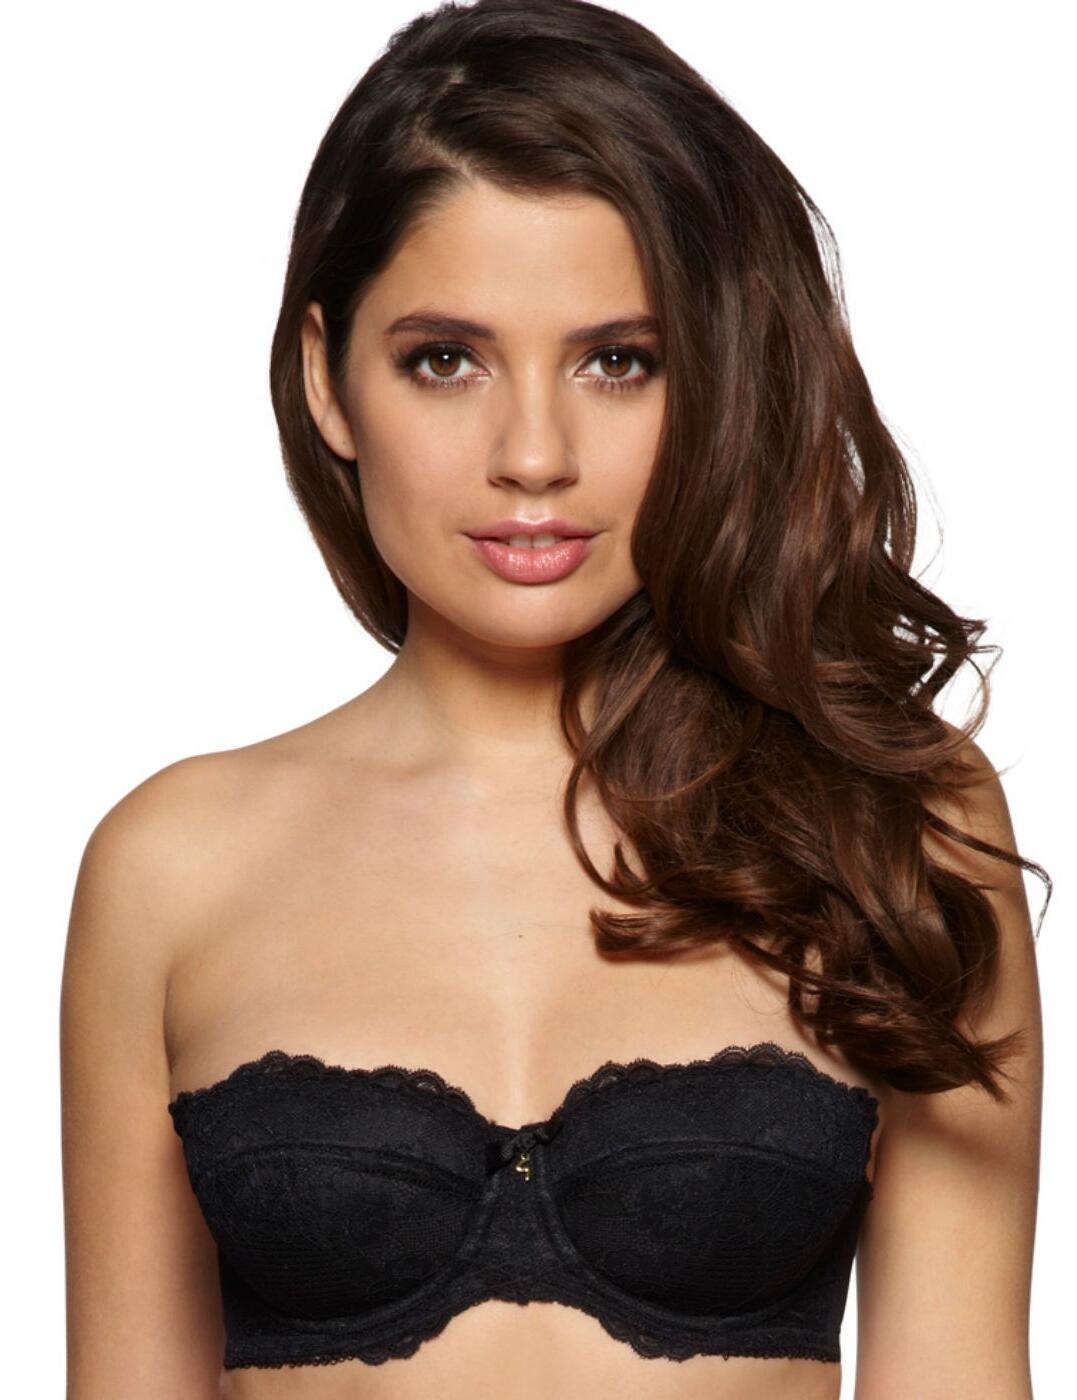 7707 Gossard Superboost Lace Multiway Bra - 7707 Black